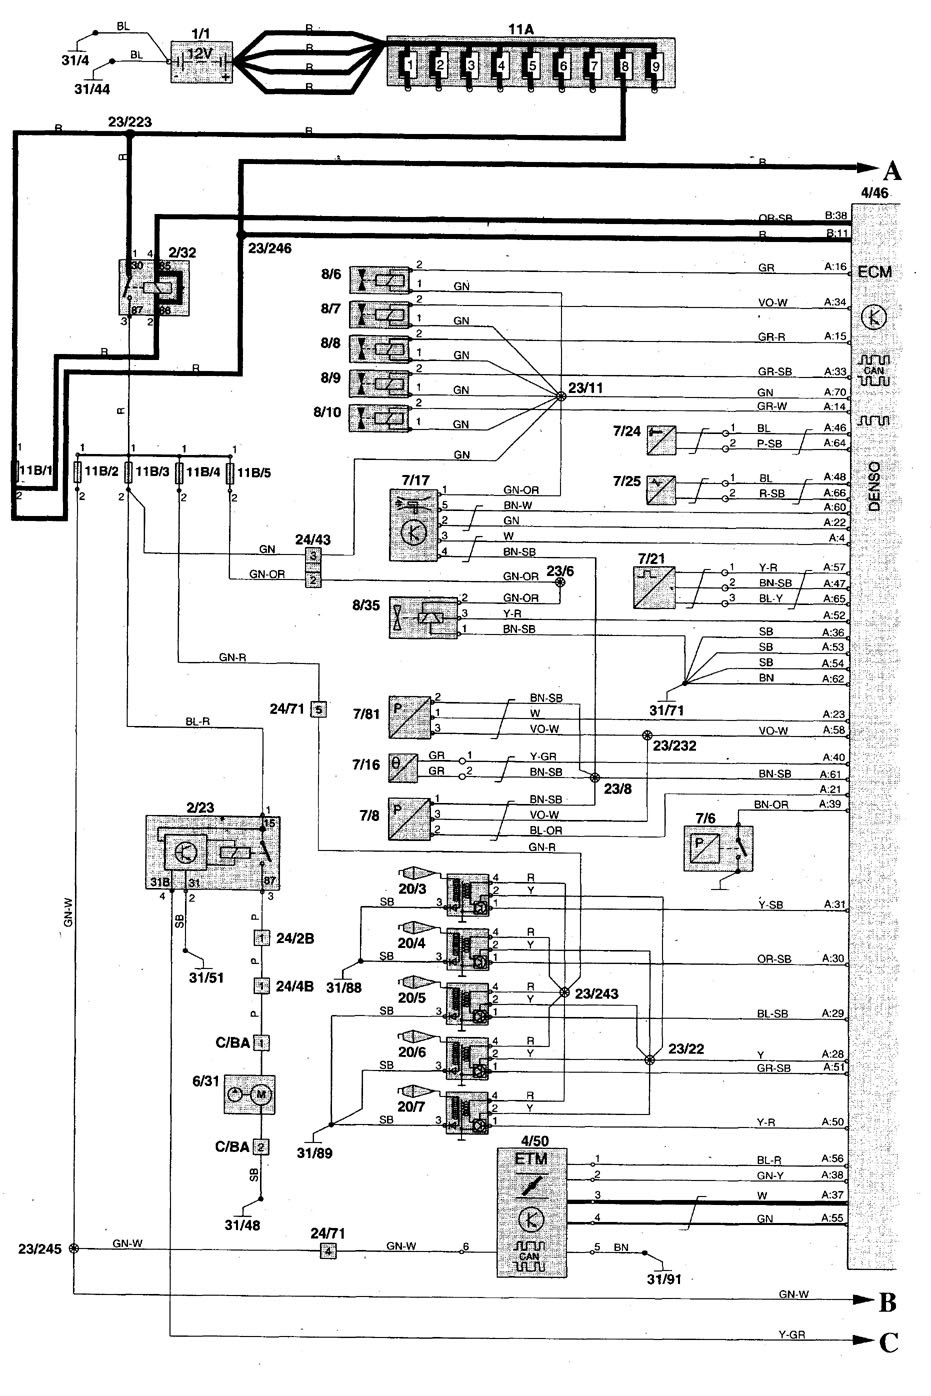 volvo c70 wiring diagram fuel pump 3 1999 c70 wiring diagram 1969 honda ct90 wiring diagram \u2022 wiring volvo amazon wiring diagram at edmiracle.co